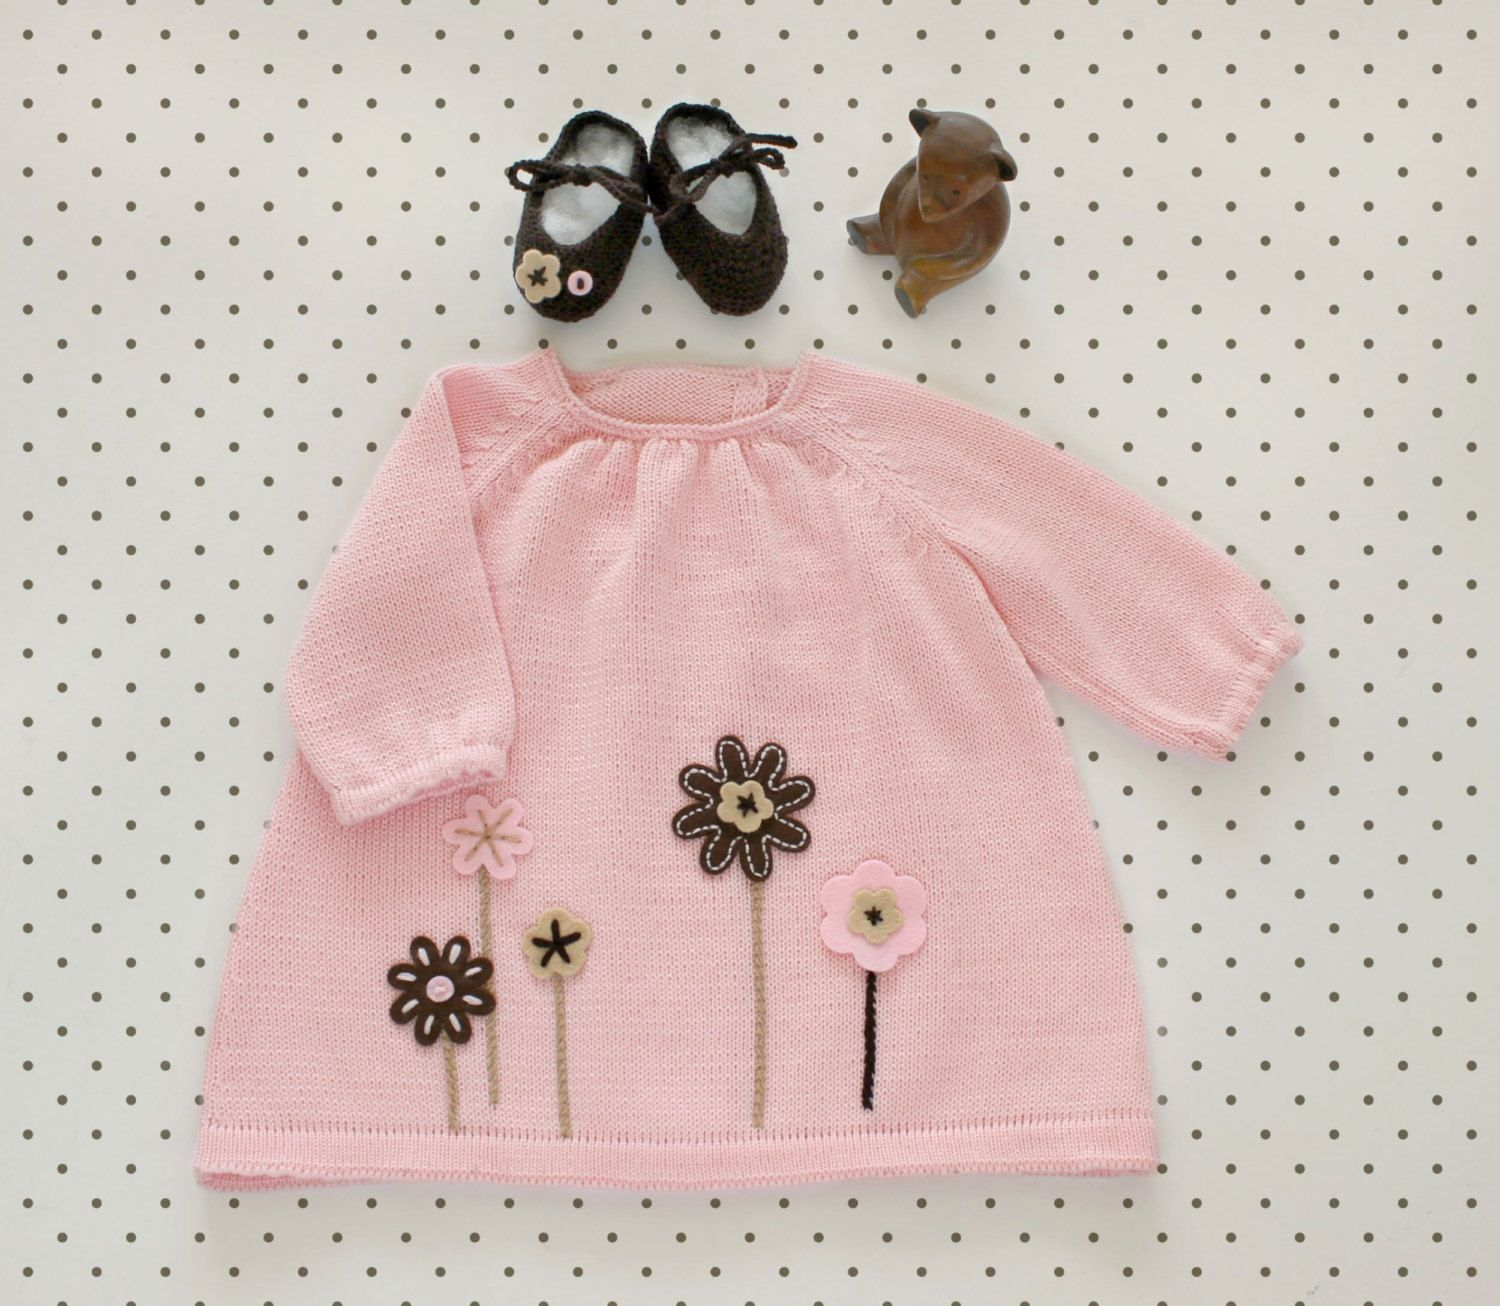 Knitted baby dress and little shoes Pink camel and brown Felt